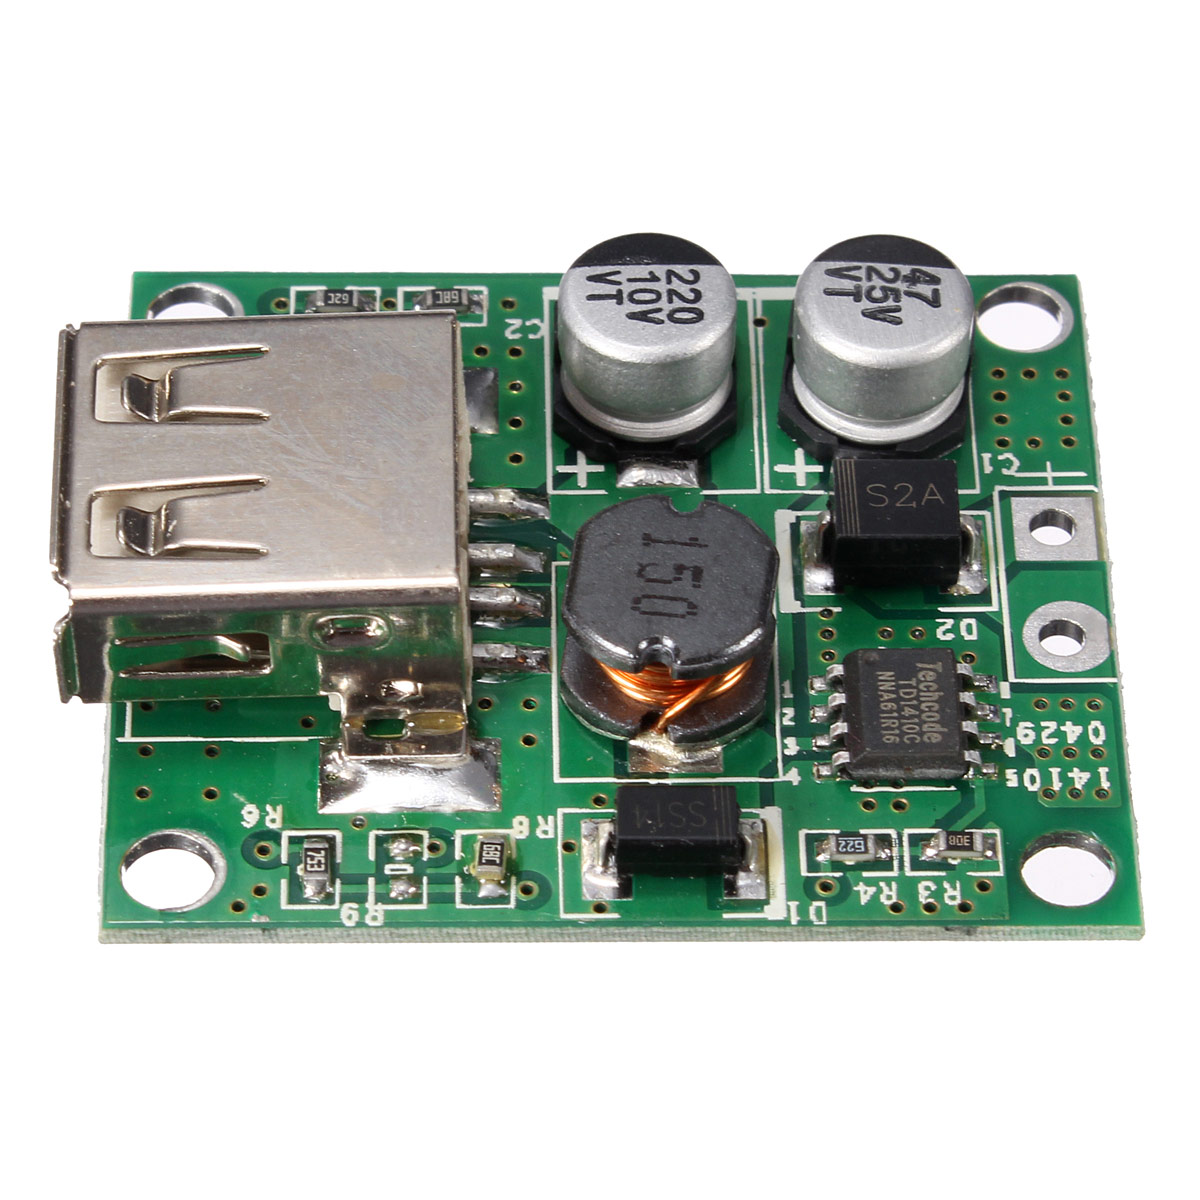 3Pcs 5V 2A Solar Panel Power Bank USB Charge Voltage Controller Regulator Module 6V 20V Input